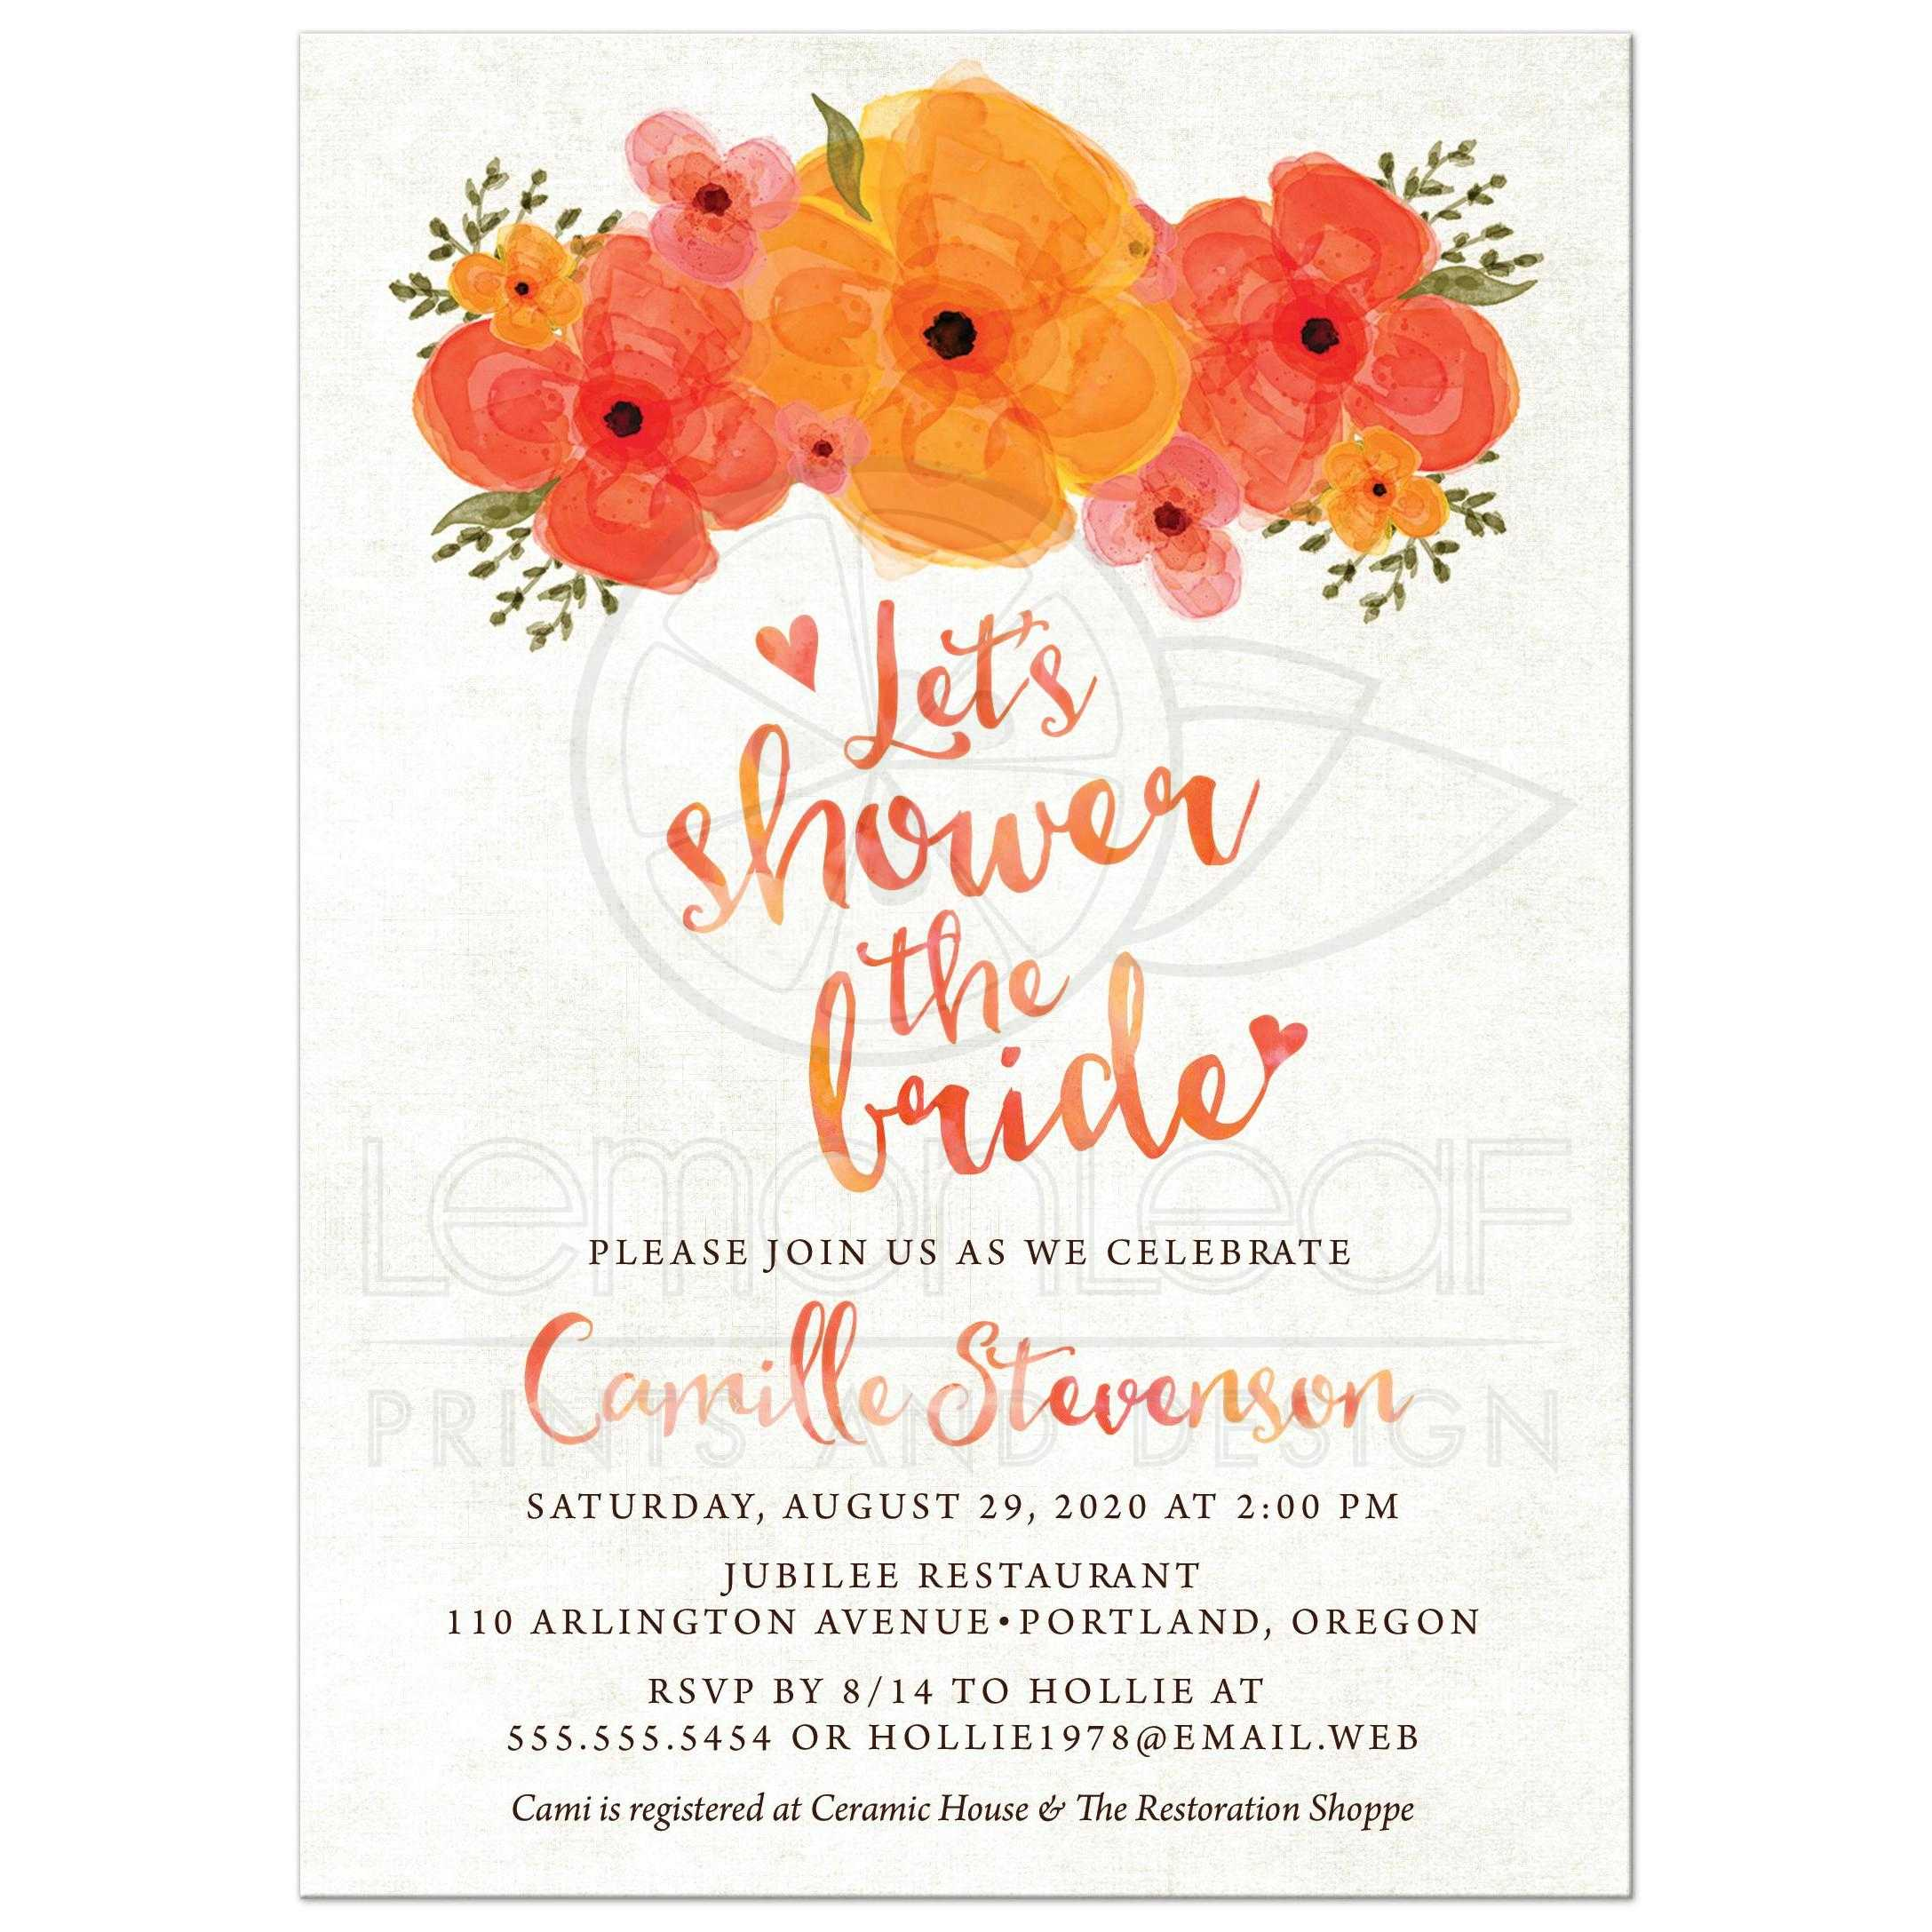 Bridal shower invitations watercolor summer garden florals watercolor summer garden florals bridal shower invitations front filmwisefo